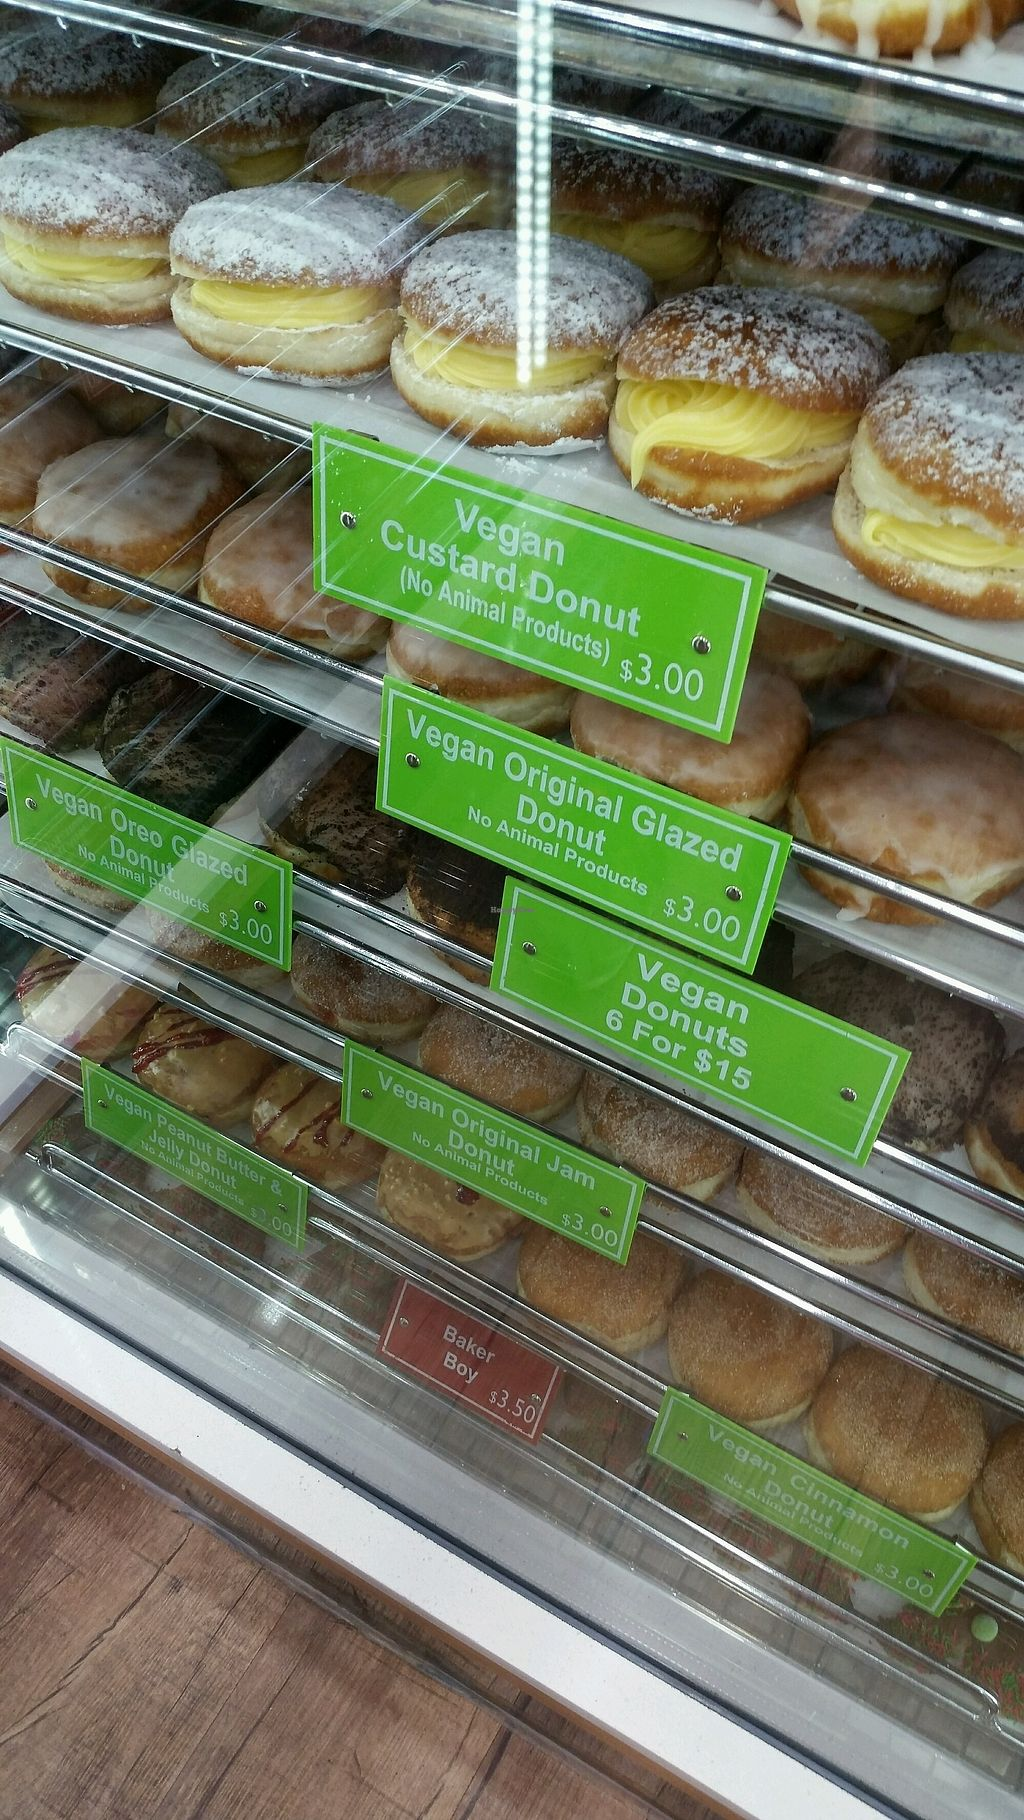 "Photo of Daniel's Donuts  by <a href=""/members/profile/Nikki1801"">Nikki1801</a> <br/>vegan section <br/> December 28, 2017  - <a href='/contact/abuse/image/94629/339814'>Report</a>"